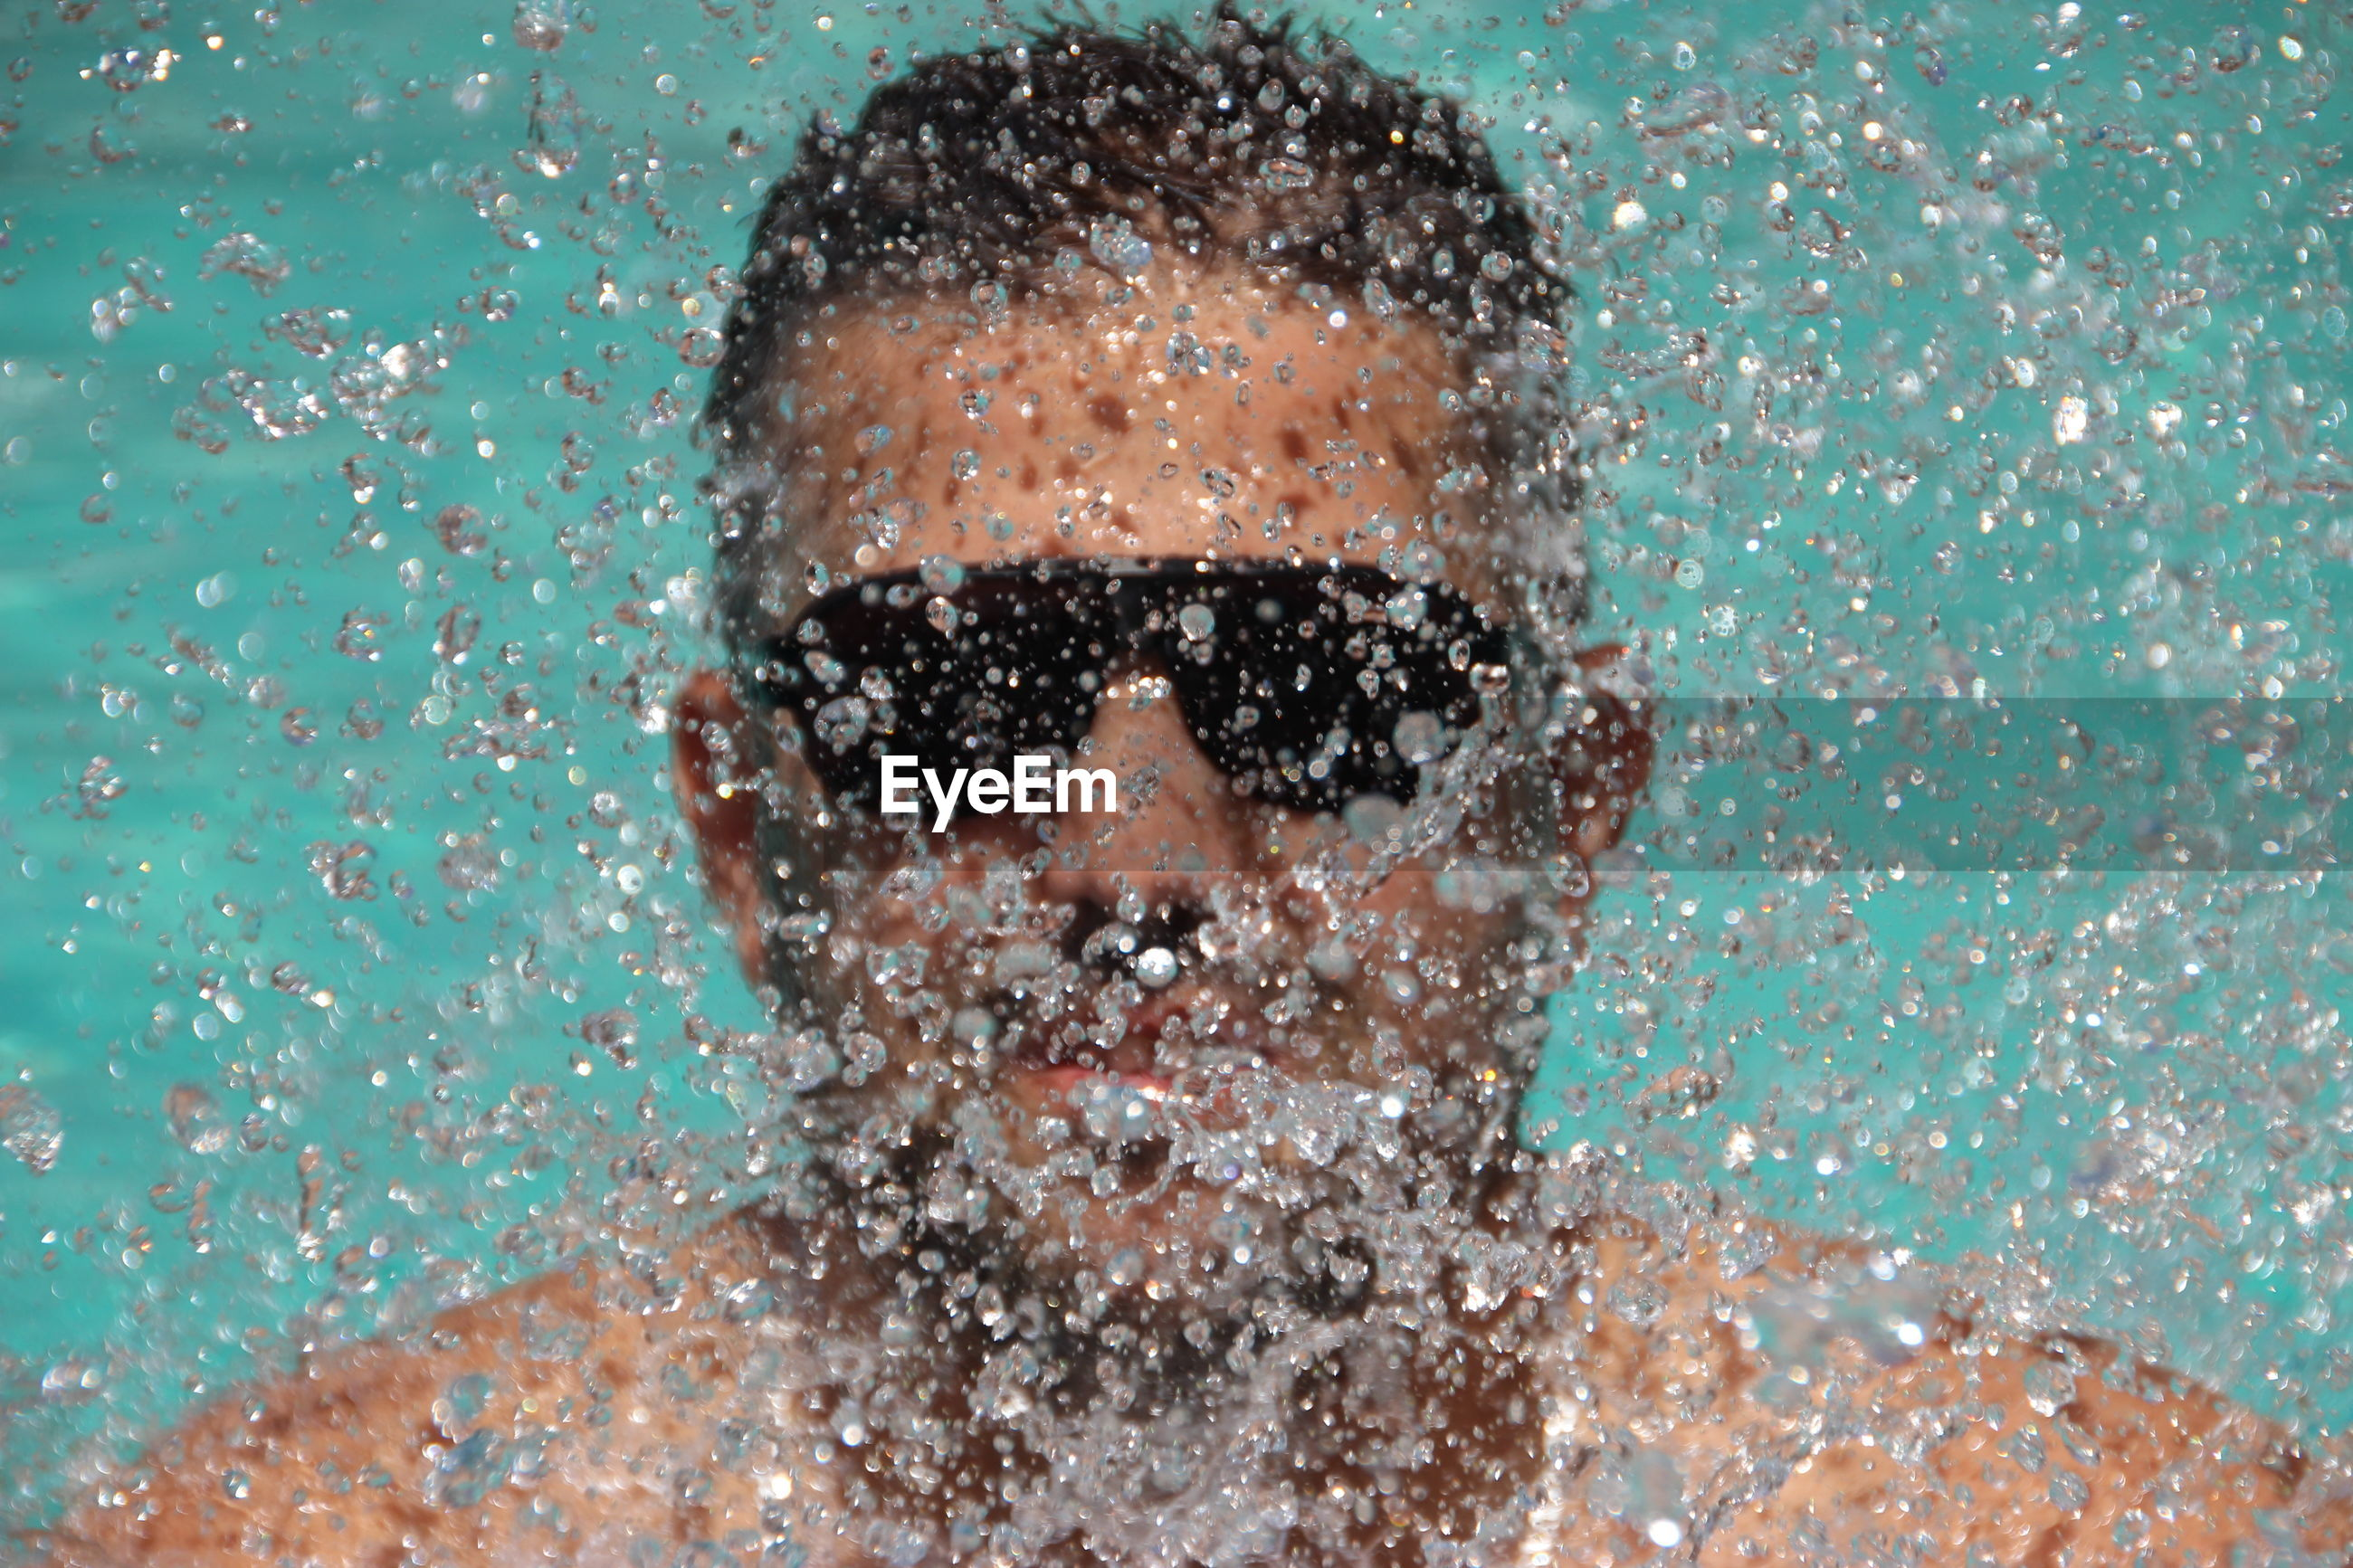 Close-up portrait of man wearing sunglasses in swimming pool